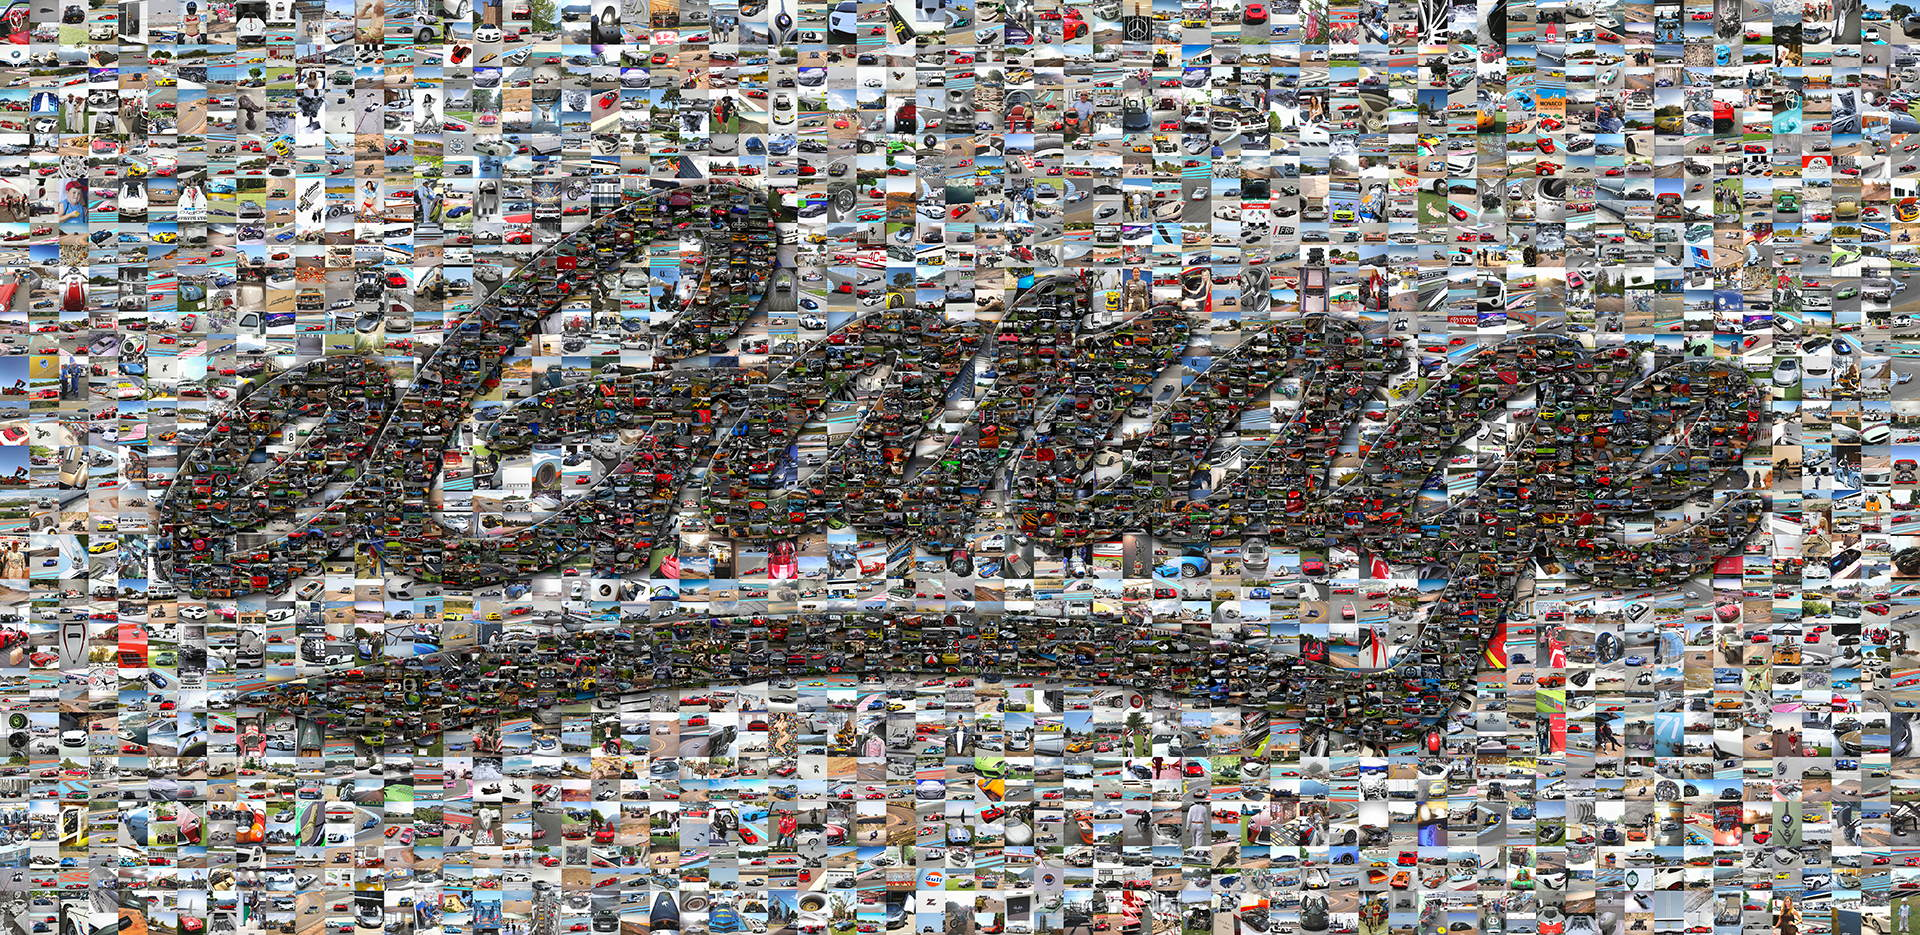 photo mosaic a collection of over 6700 automobiles make up this eGarage mosaic mural